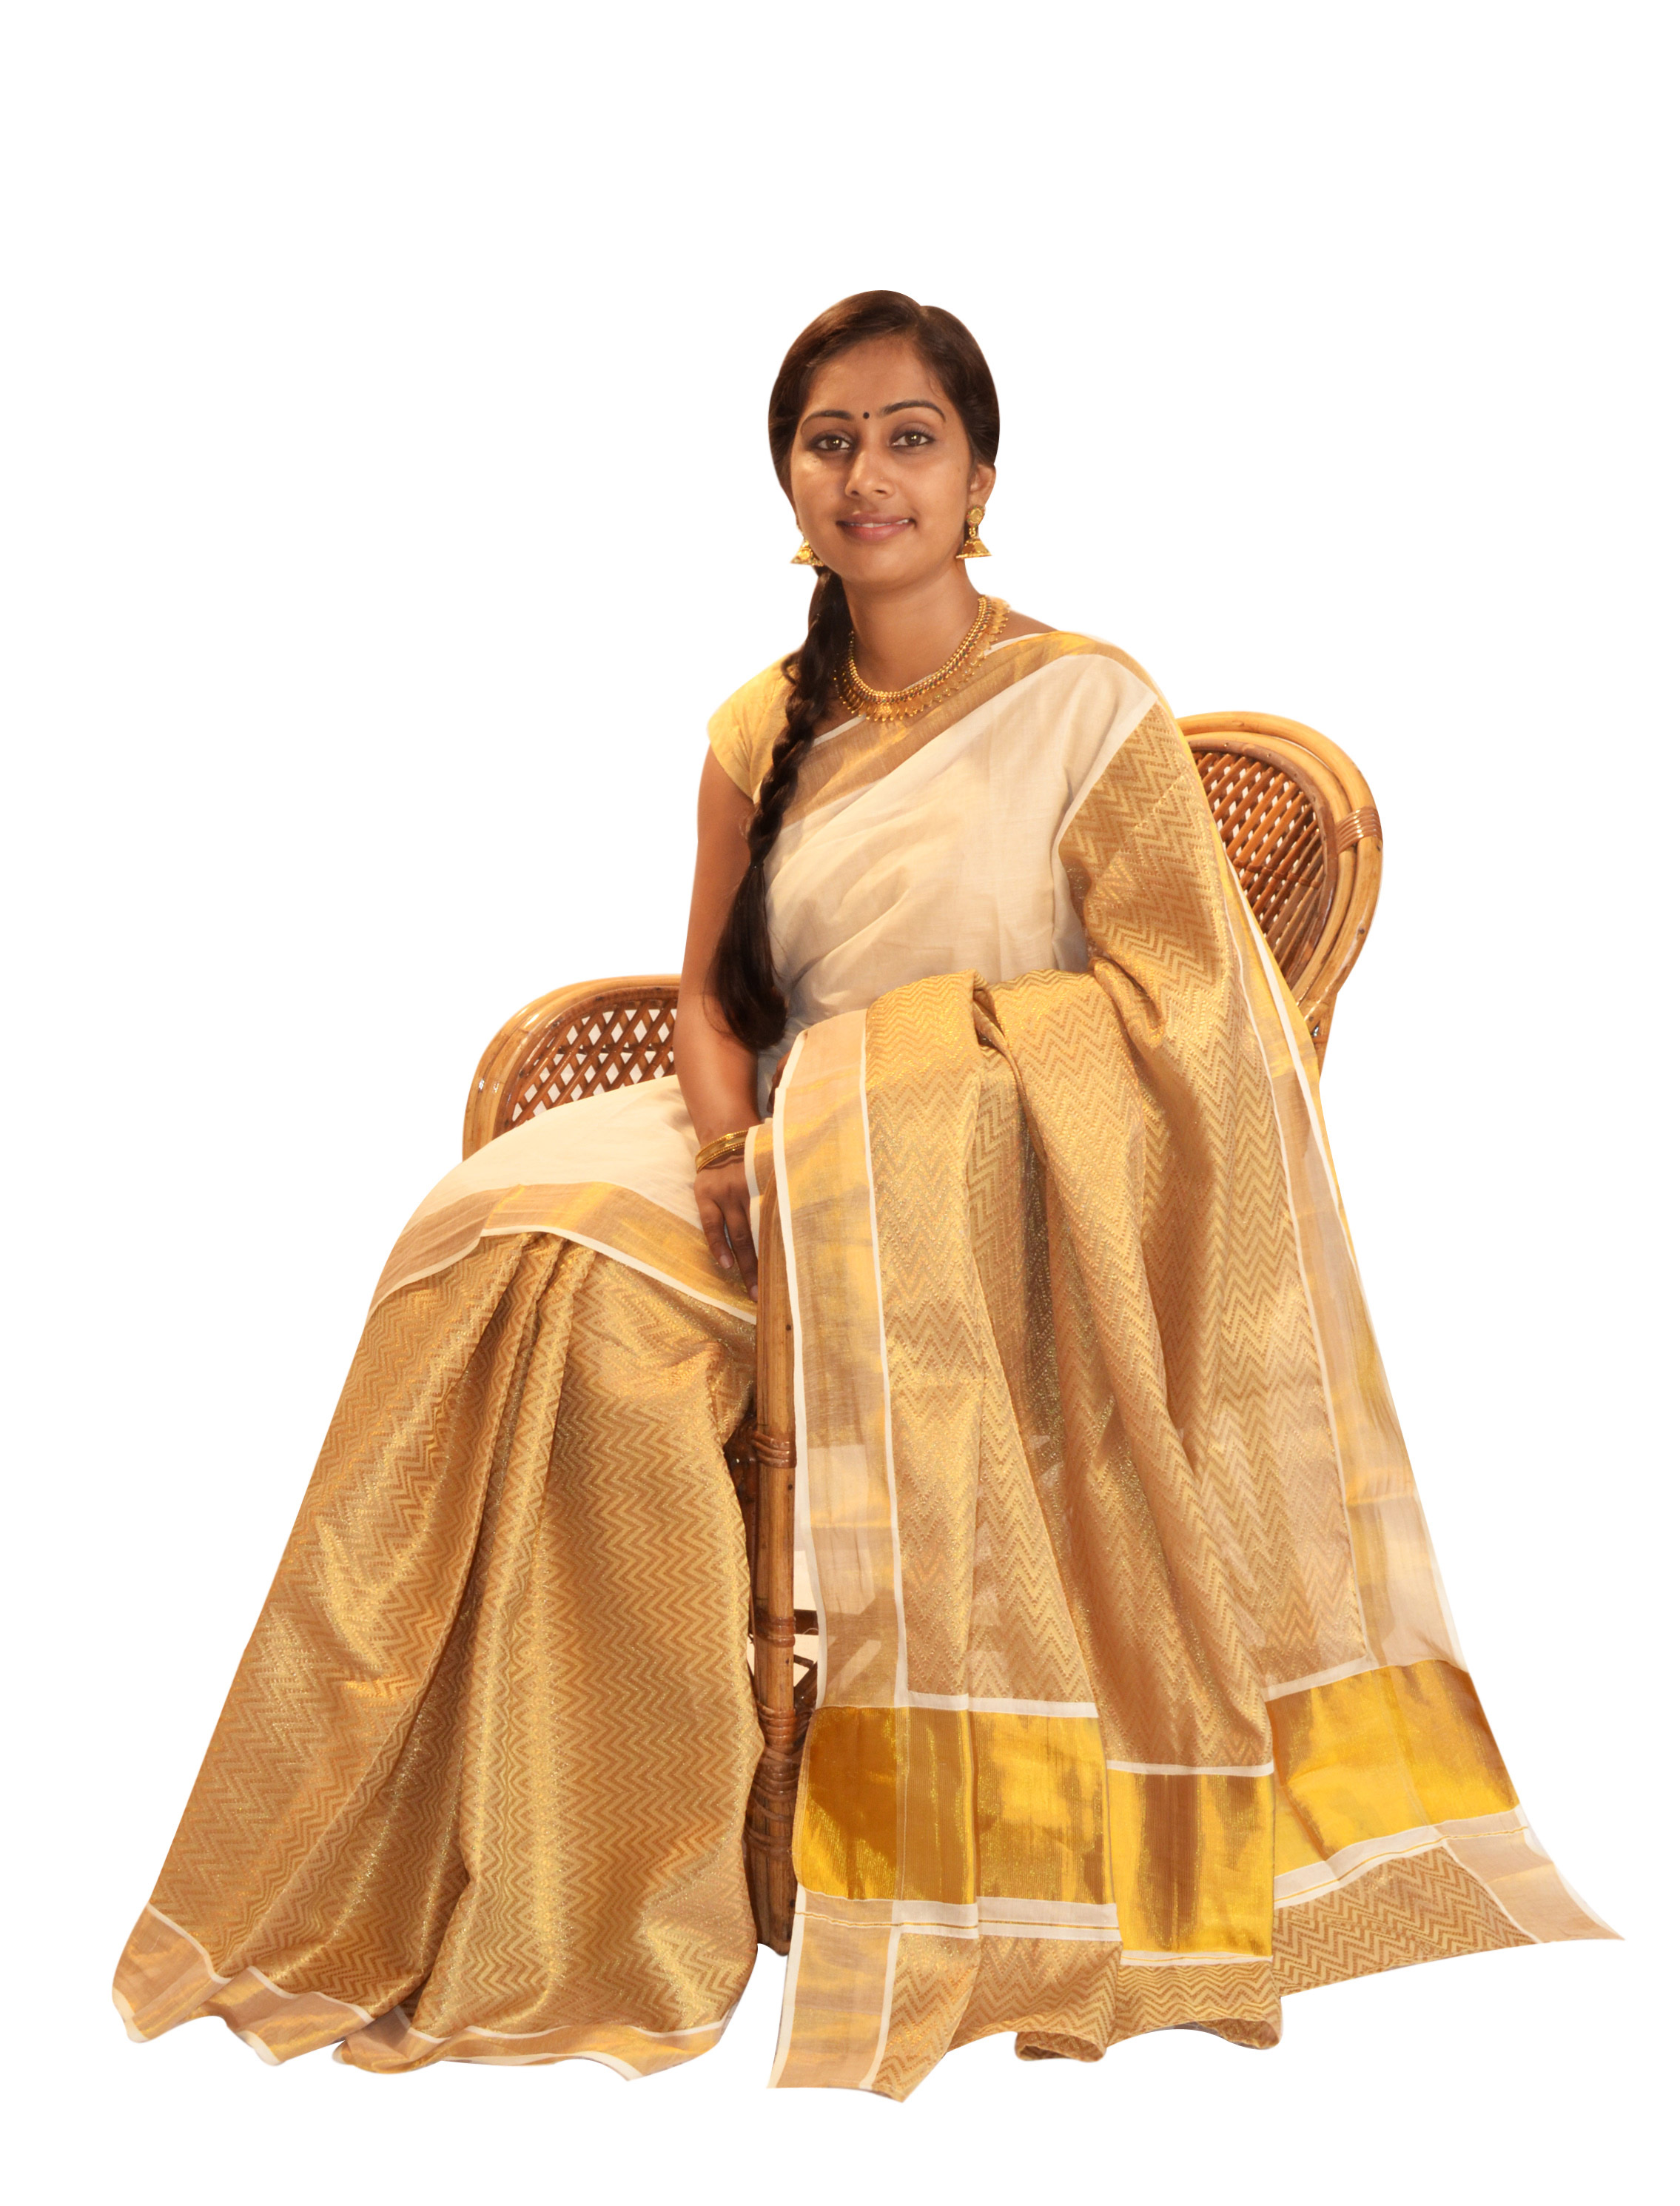 Off White And Golden Cotton Saree With Blouse Black Friday Deal Small 1d44ff3f4d093069d56e7327eedc29da60f5c0cc09300f652d7f464c9cb4e123